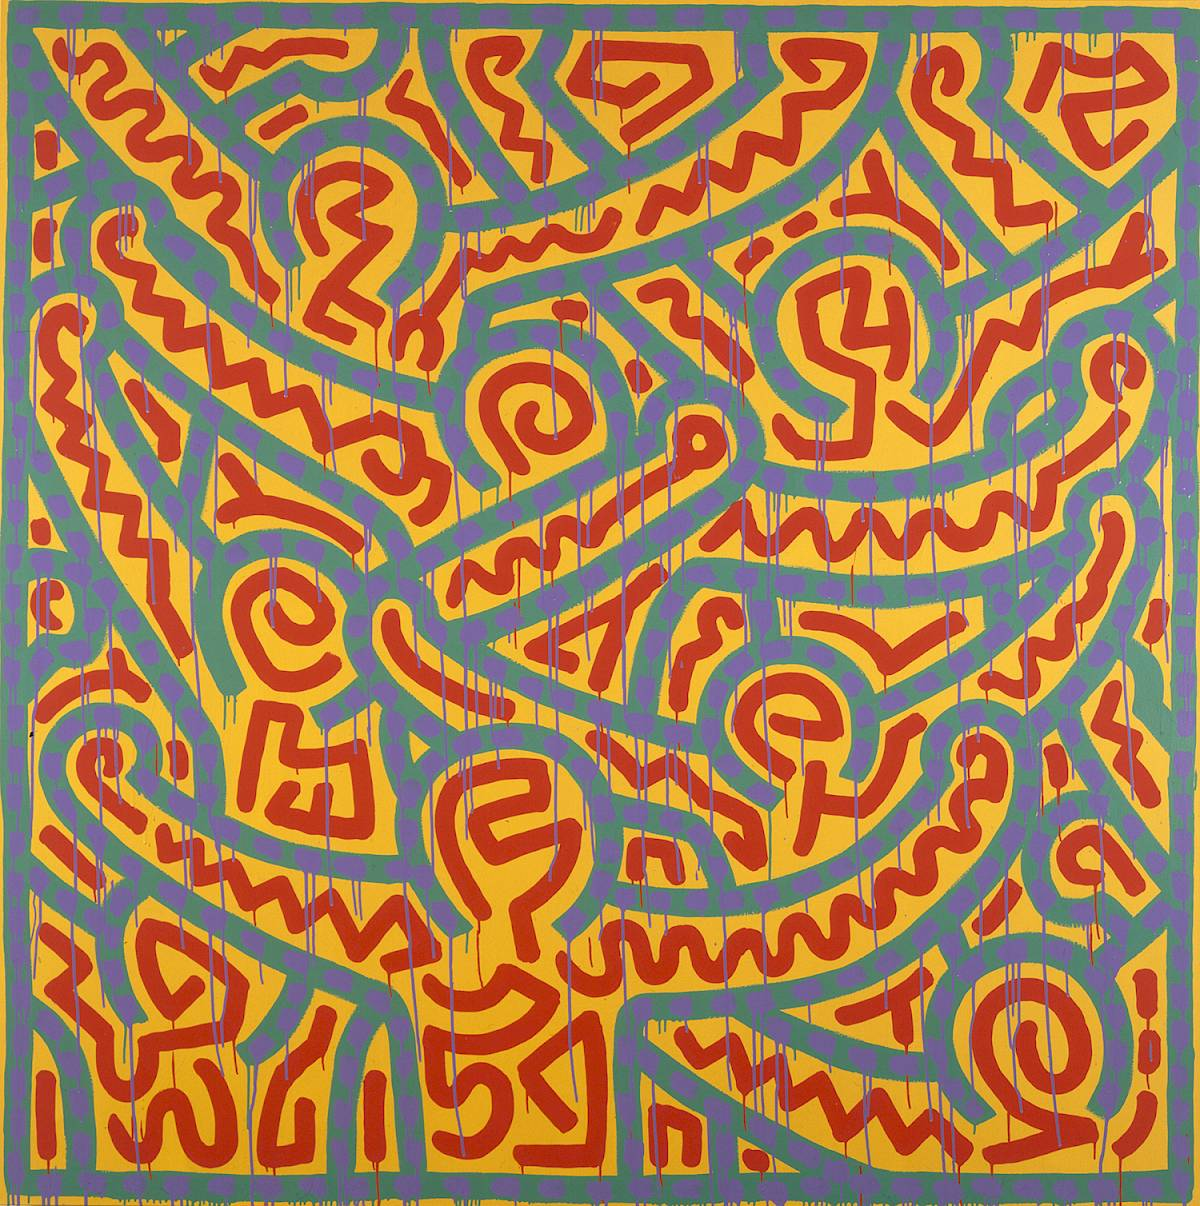 keith_haring_ohne_titel-_1989_c_the_keit